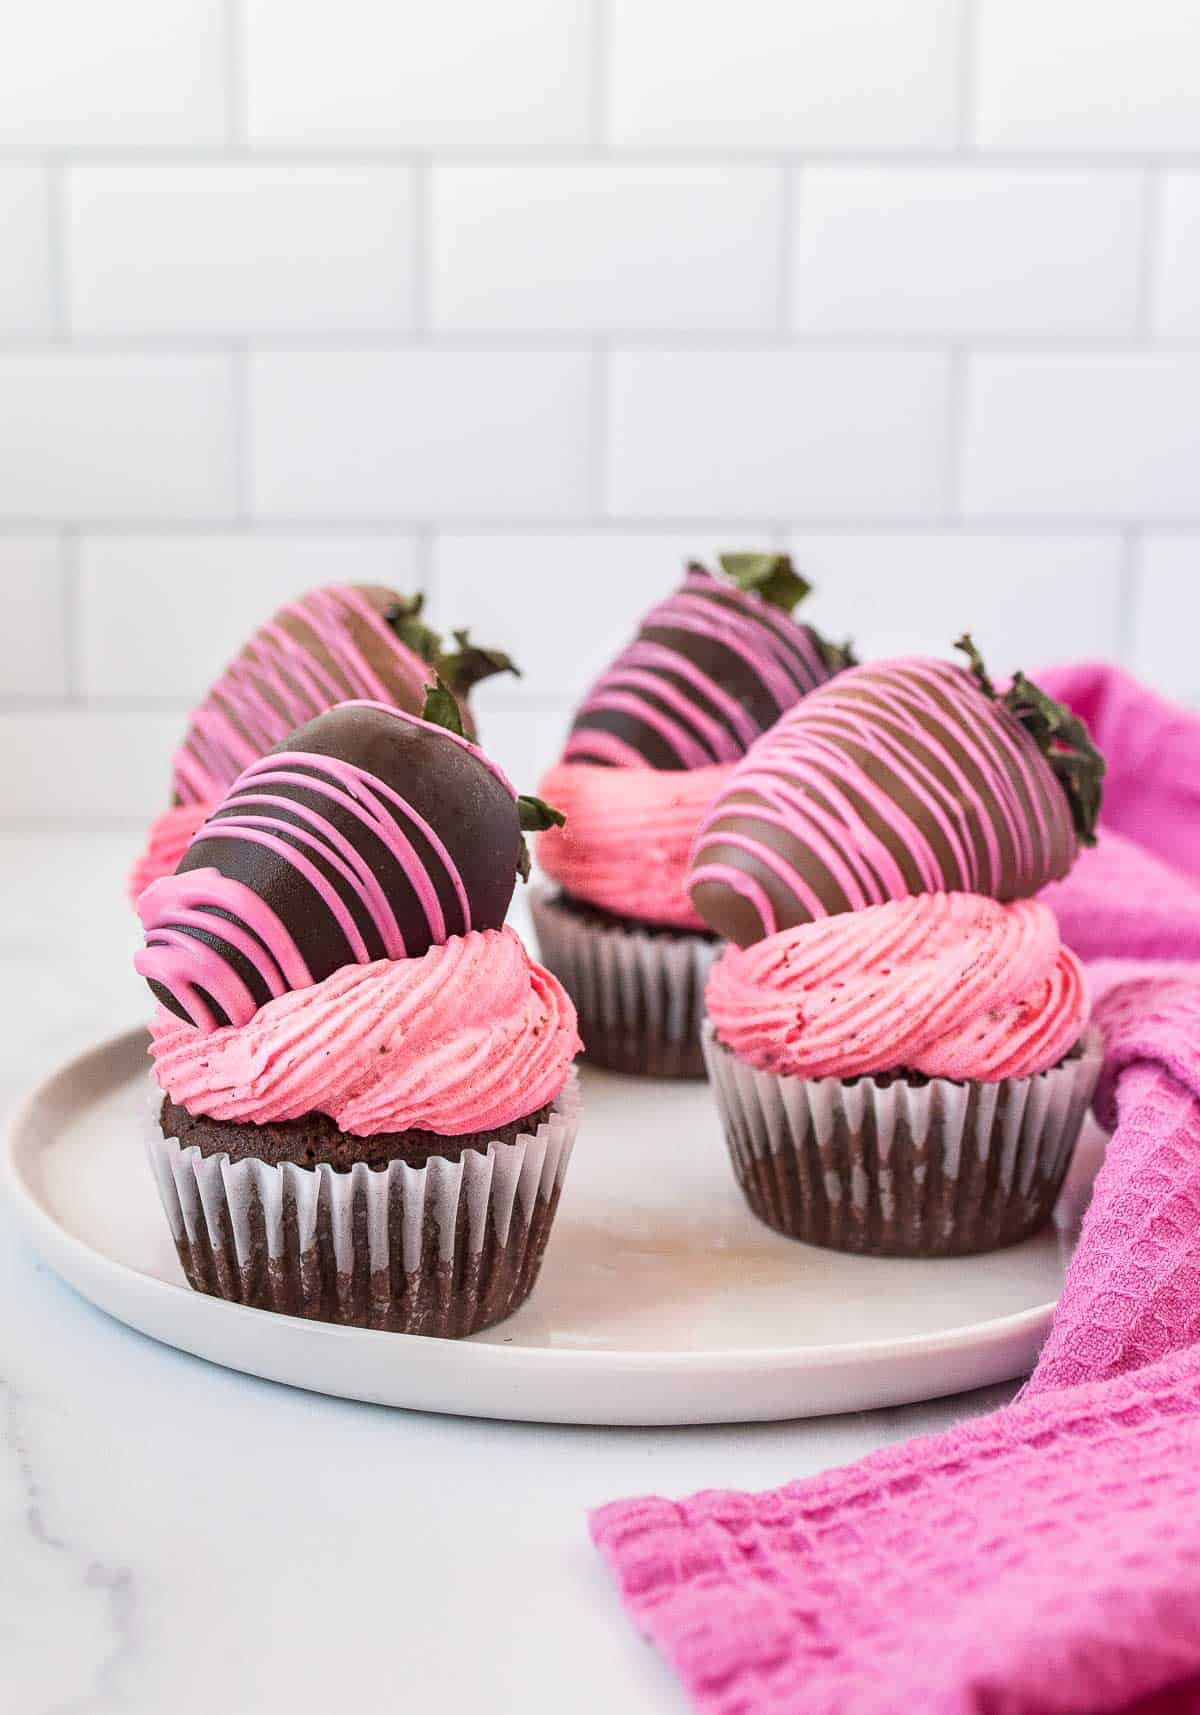 plate of chocolate cupcakes with pink frosting and chocolate covered strawberries on top.